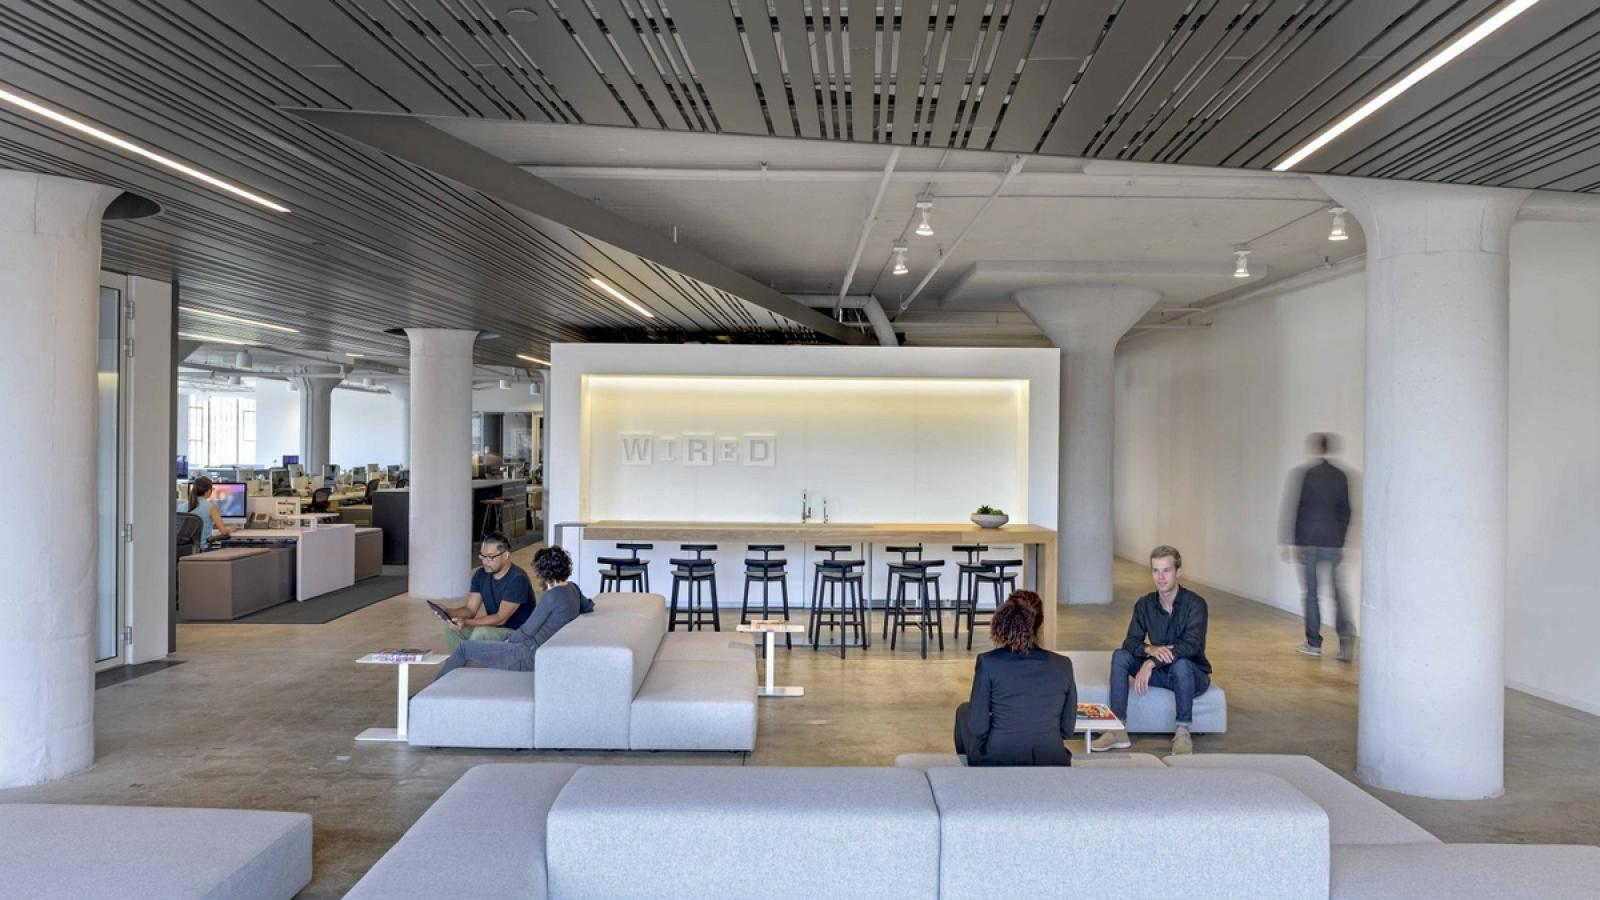 office design inspiration. Inside Look At WIRED Offices - San Francisco Office Design Inspiration S